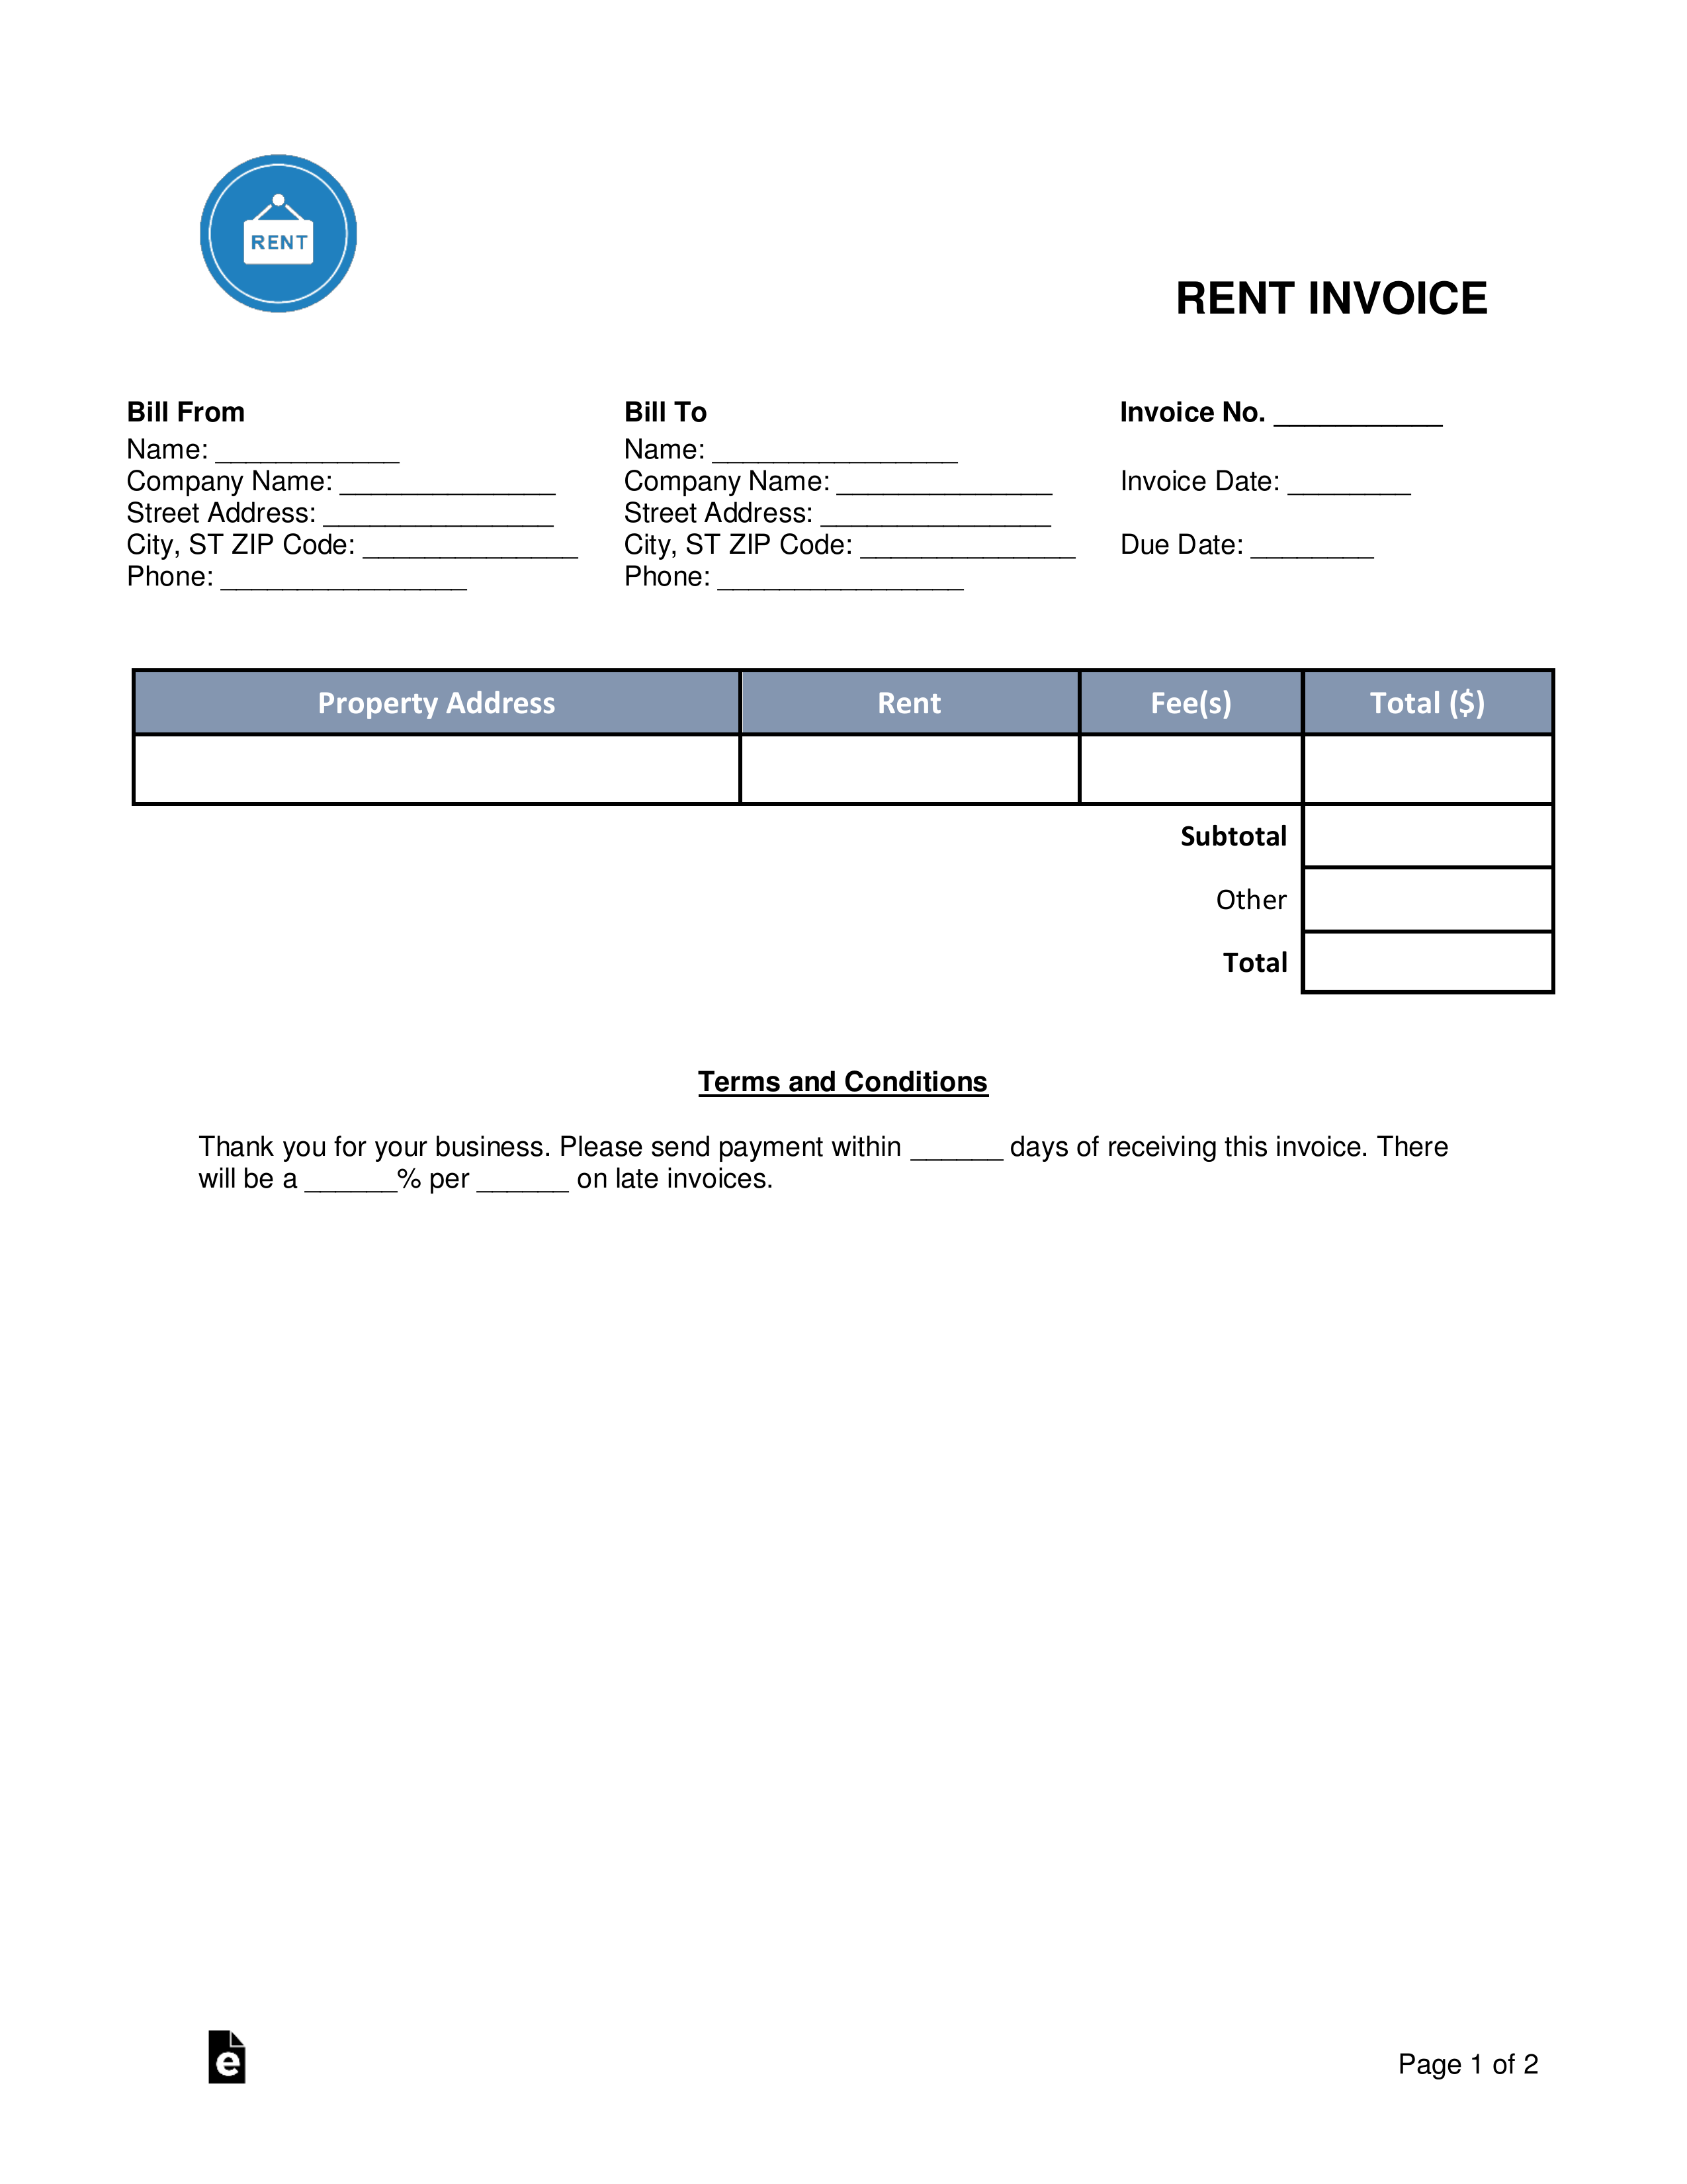 Word Monthly Rent Invoice Template